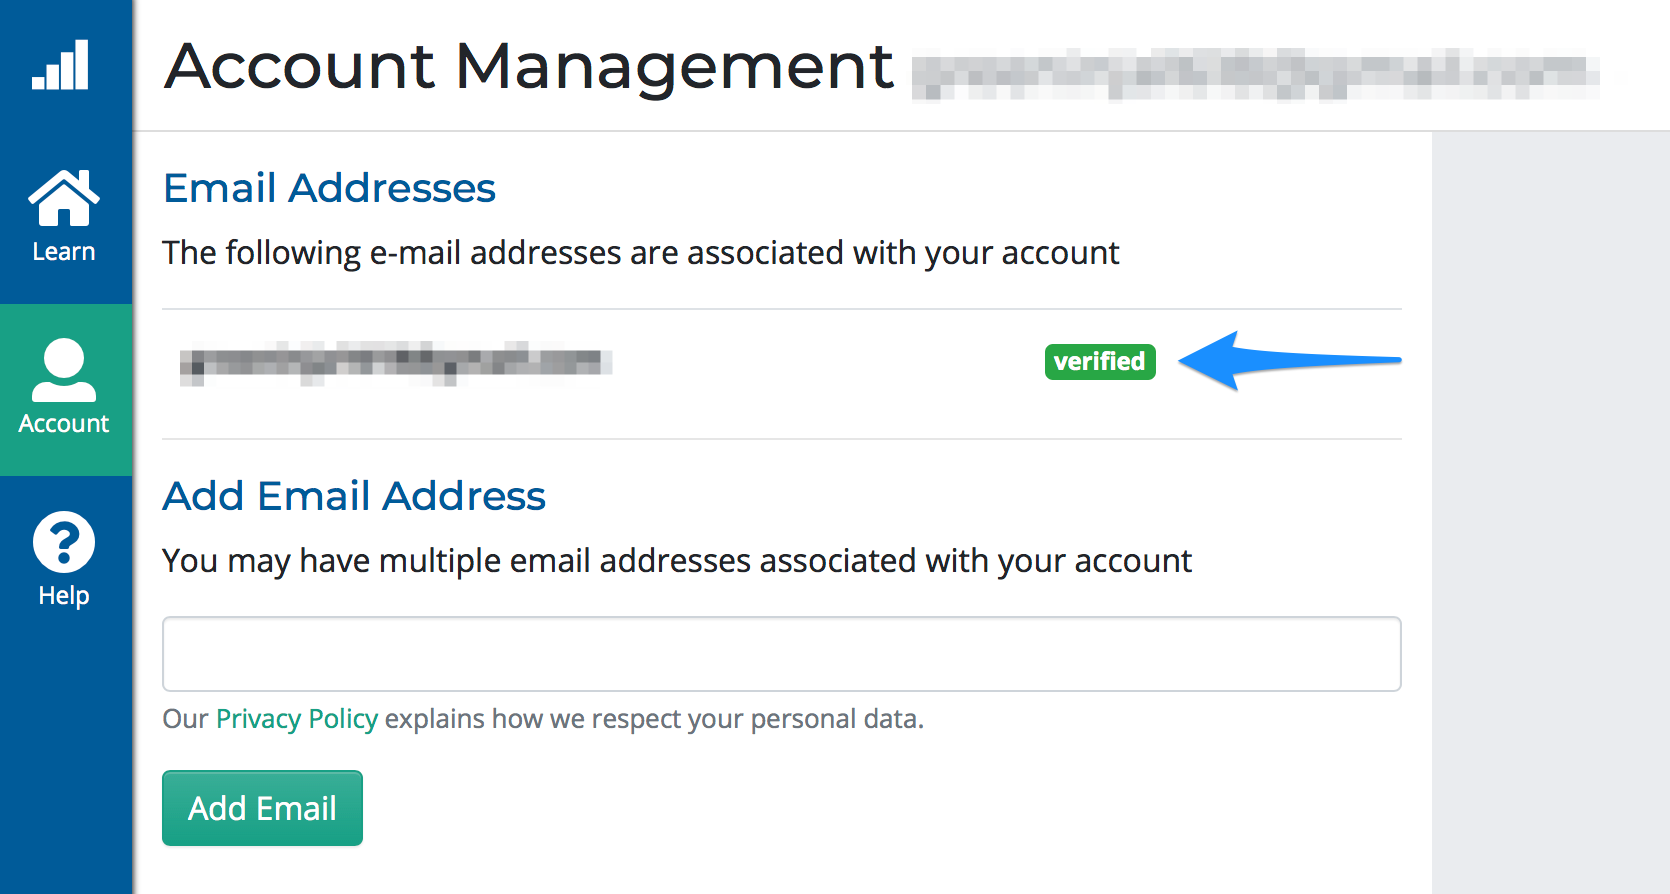 Manage_Email_Addresses_Verified.png